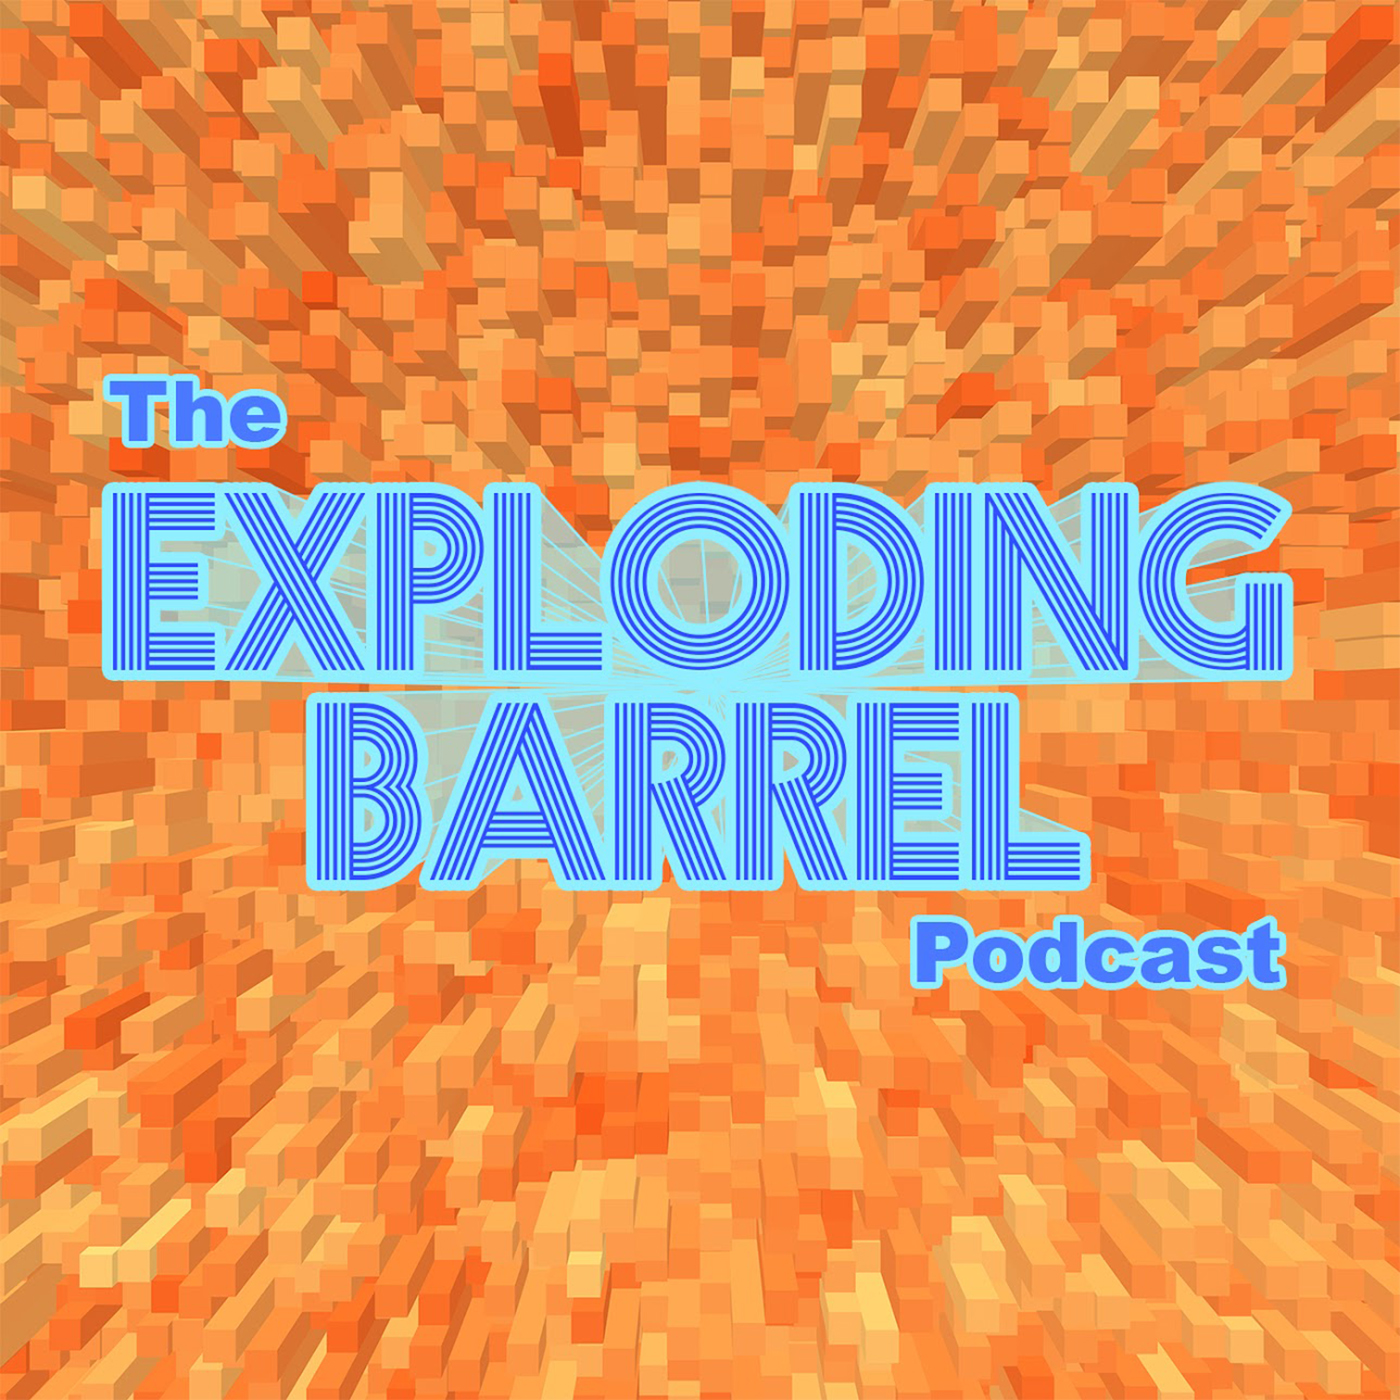 <![CDATA[The Exploding Barrel Podcast]]>